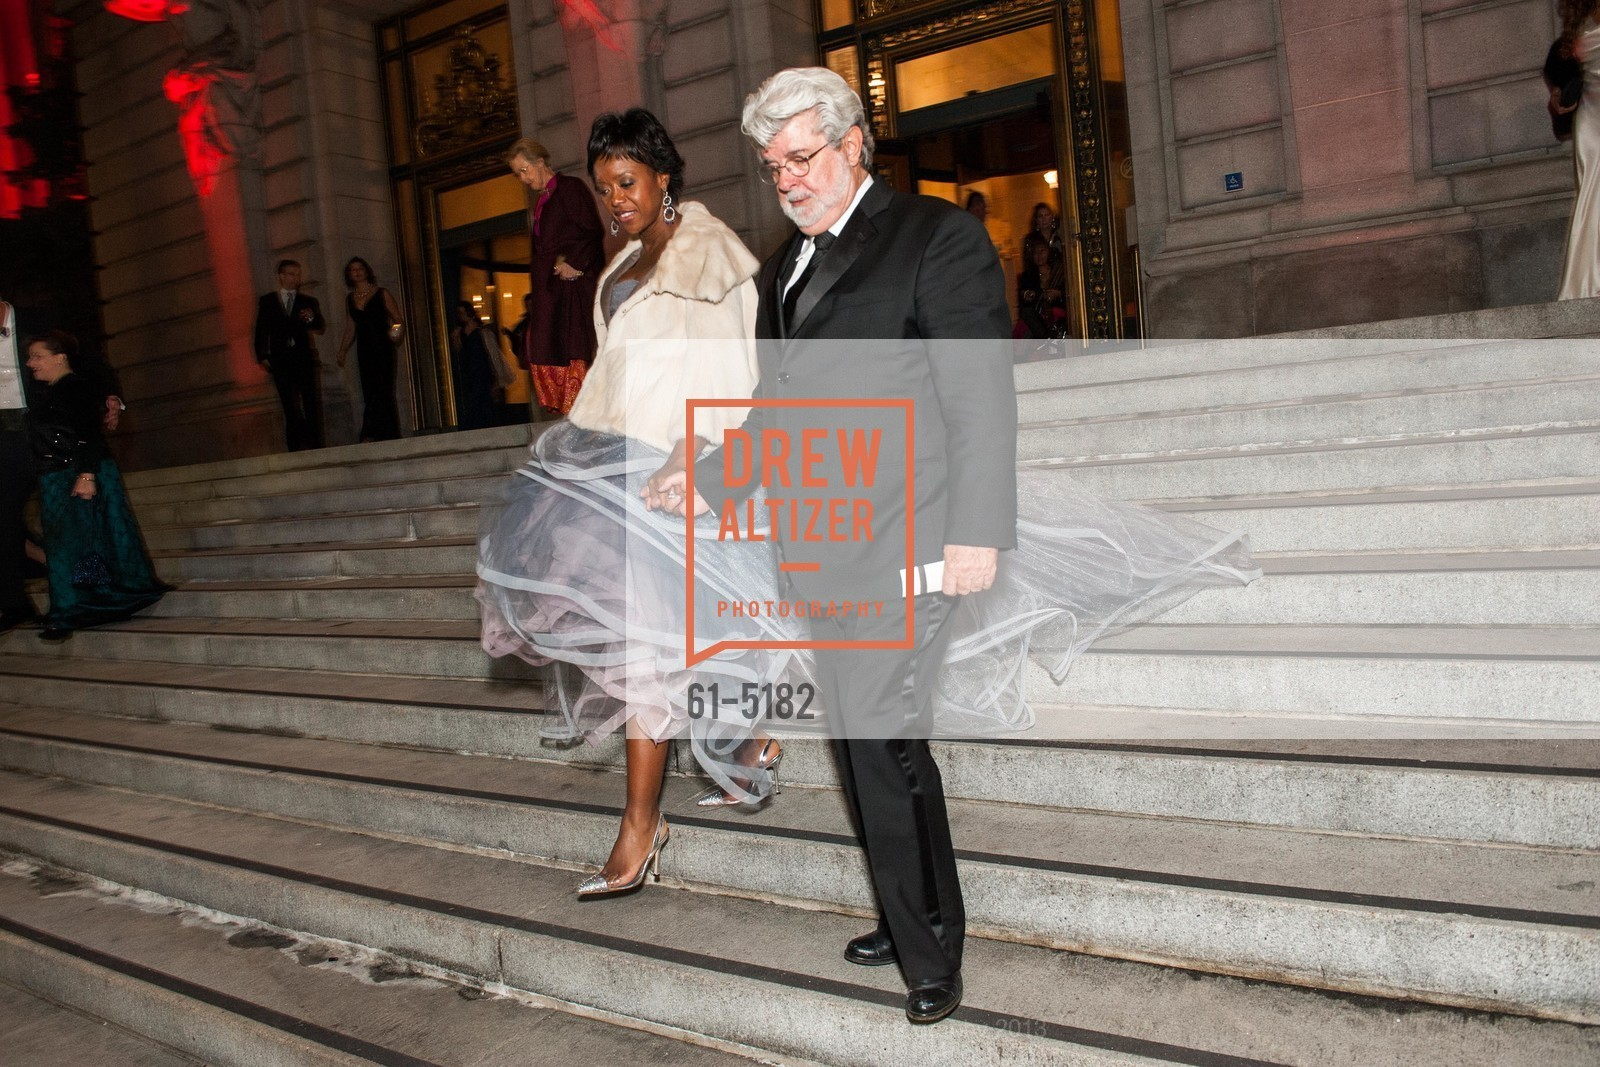 Mellody Hobson, George Lucas, Photo #61-5182